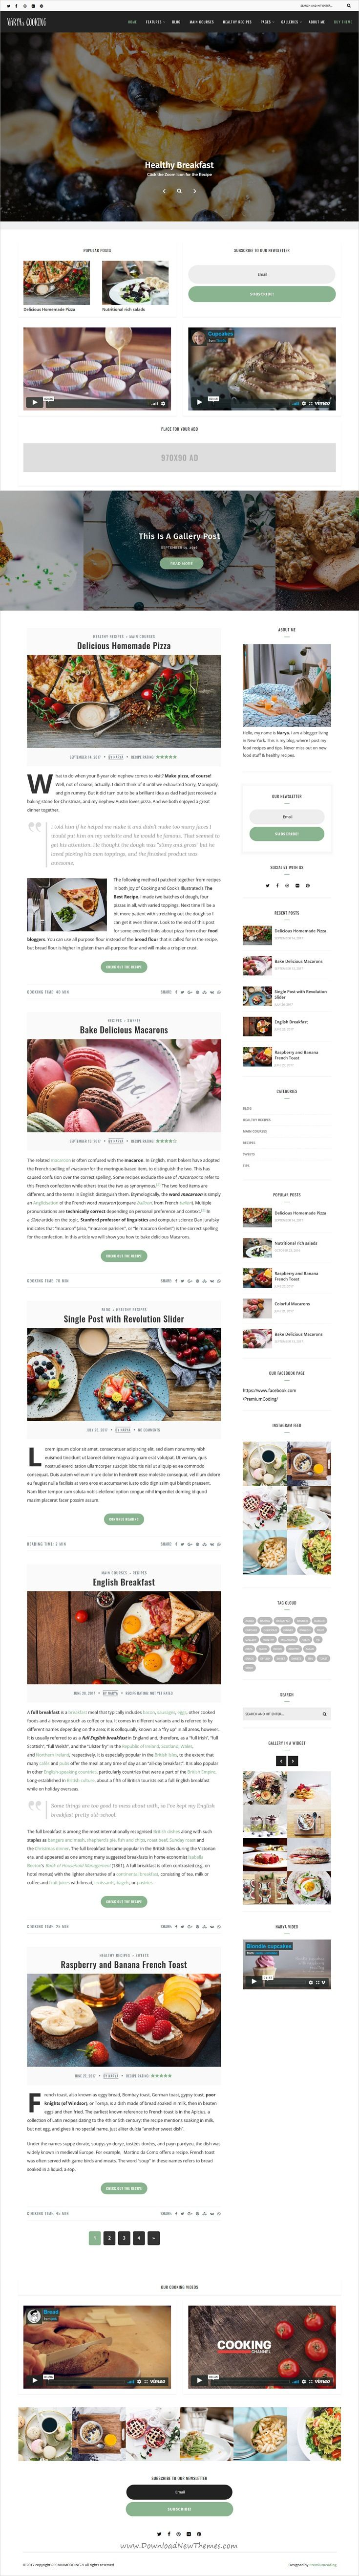 Narya is clean and modern design 6in1 responsive WordPress theme for #food #recipe #blog and magazine website download now..